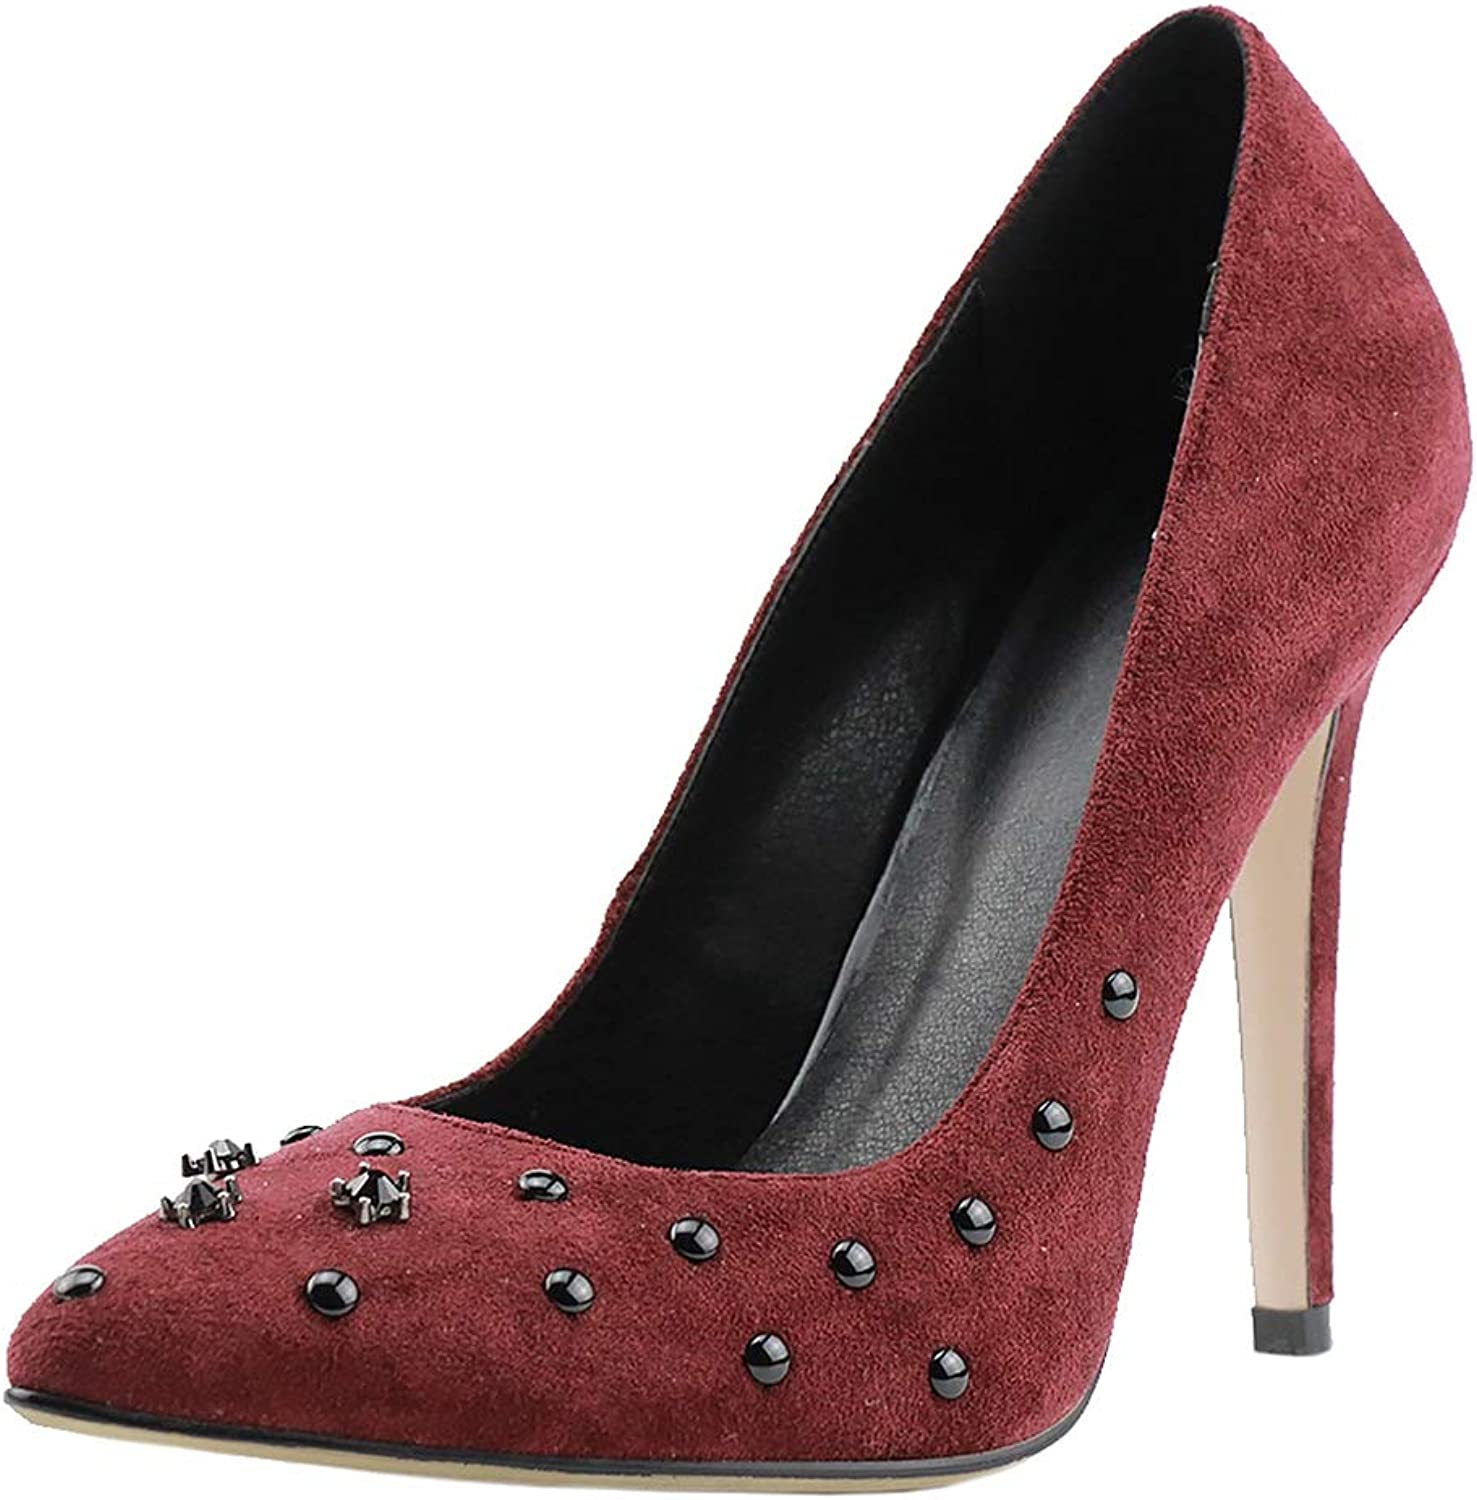 SaraIris Women's Thin High Heel Suede Wedding Party Fashion Studded Rivet Pointed Toe Dress Pumps shoes